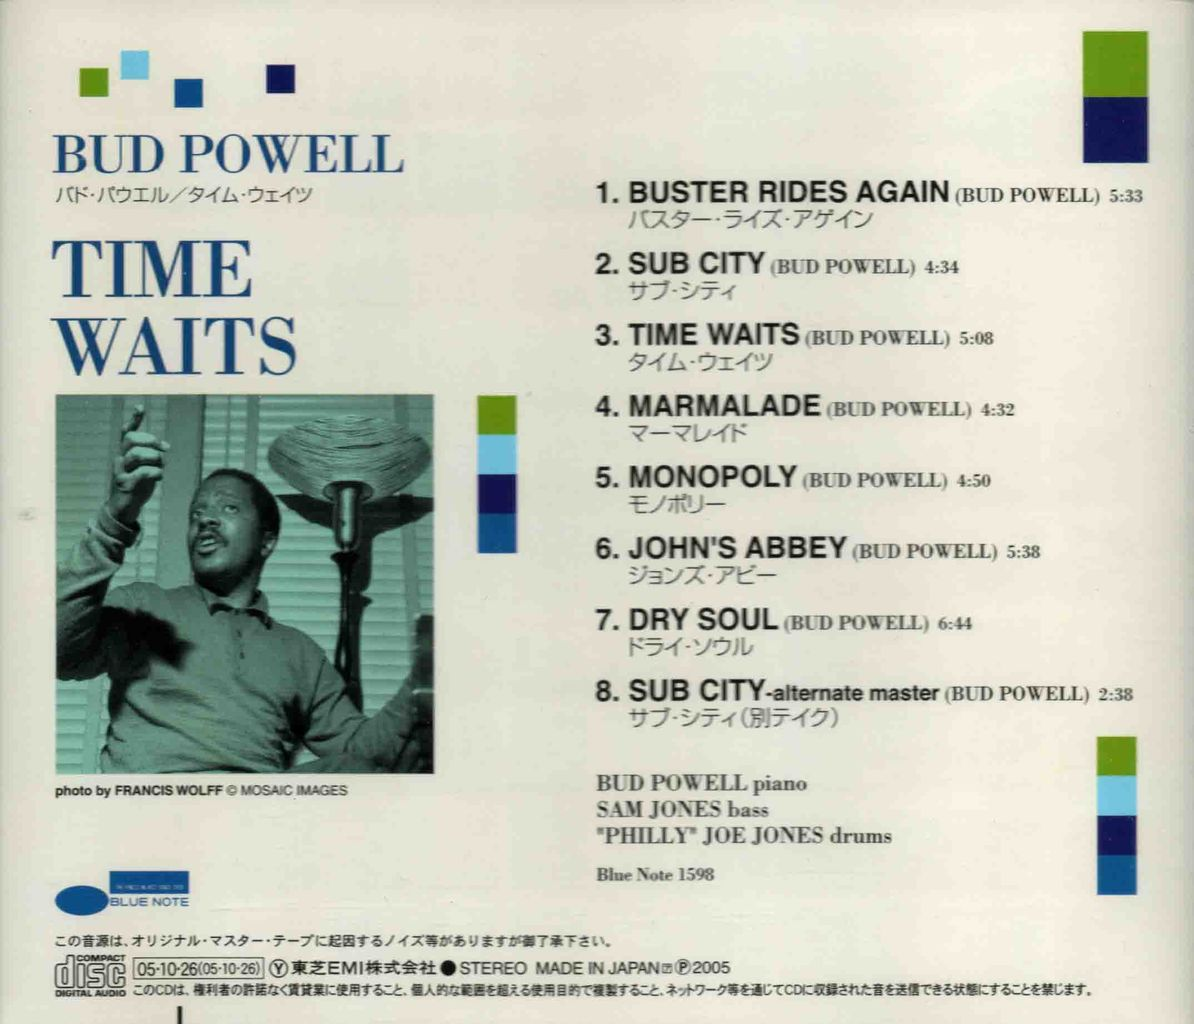 TIME WAITS - THE AMAZING BUD POWELL VOL.4-2